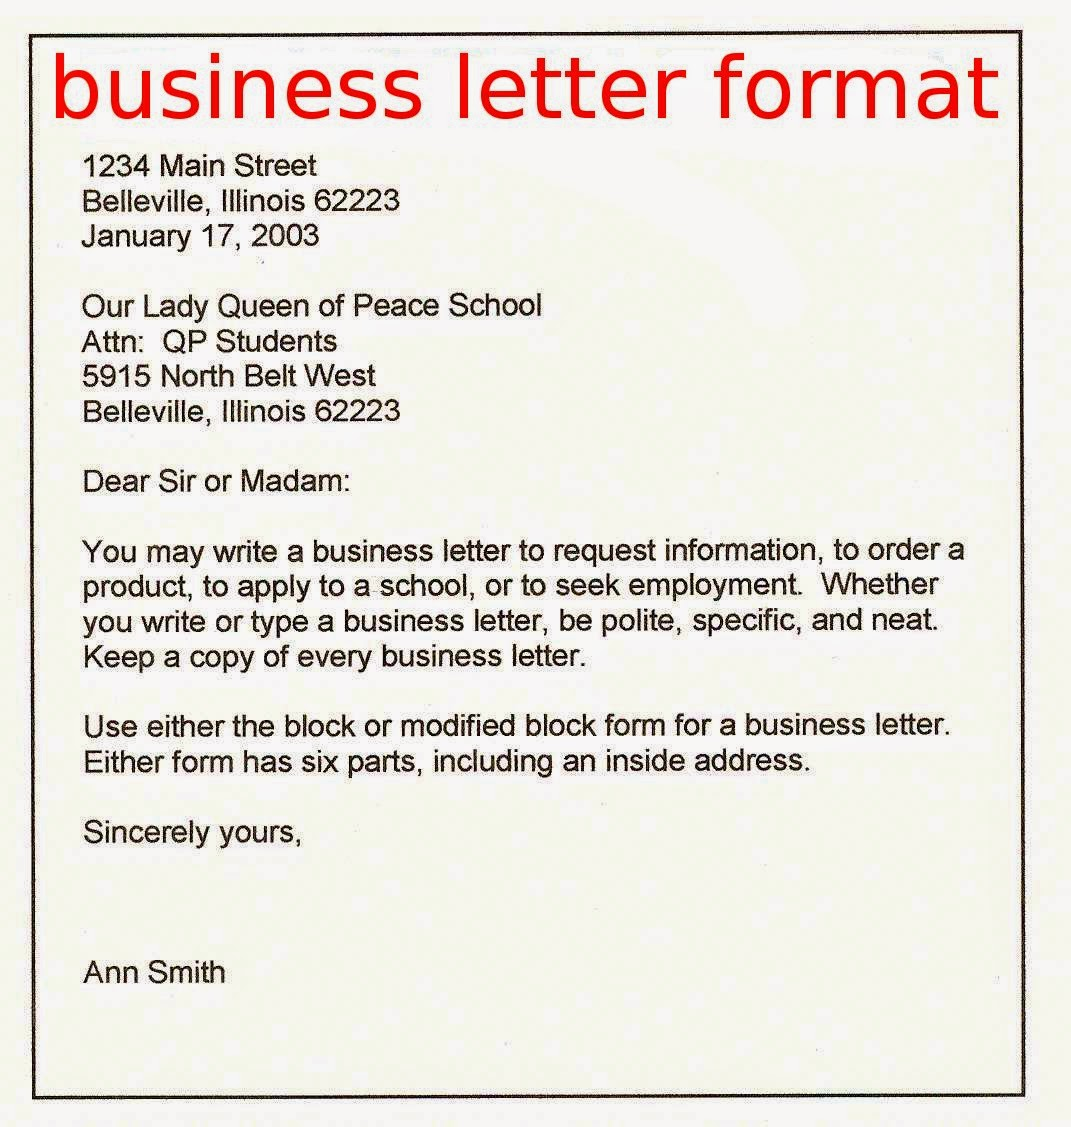 A Example Of A Business Letter Format